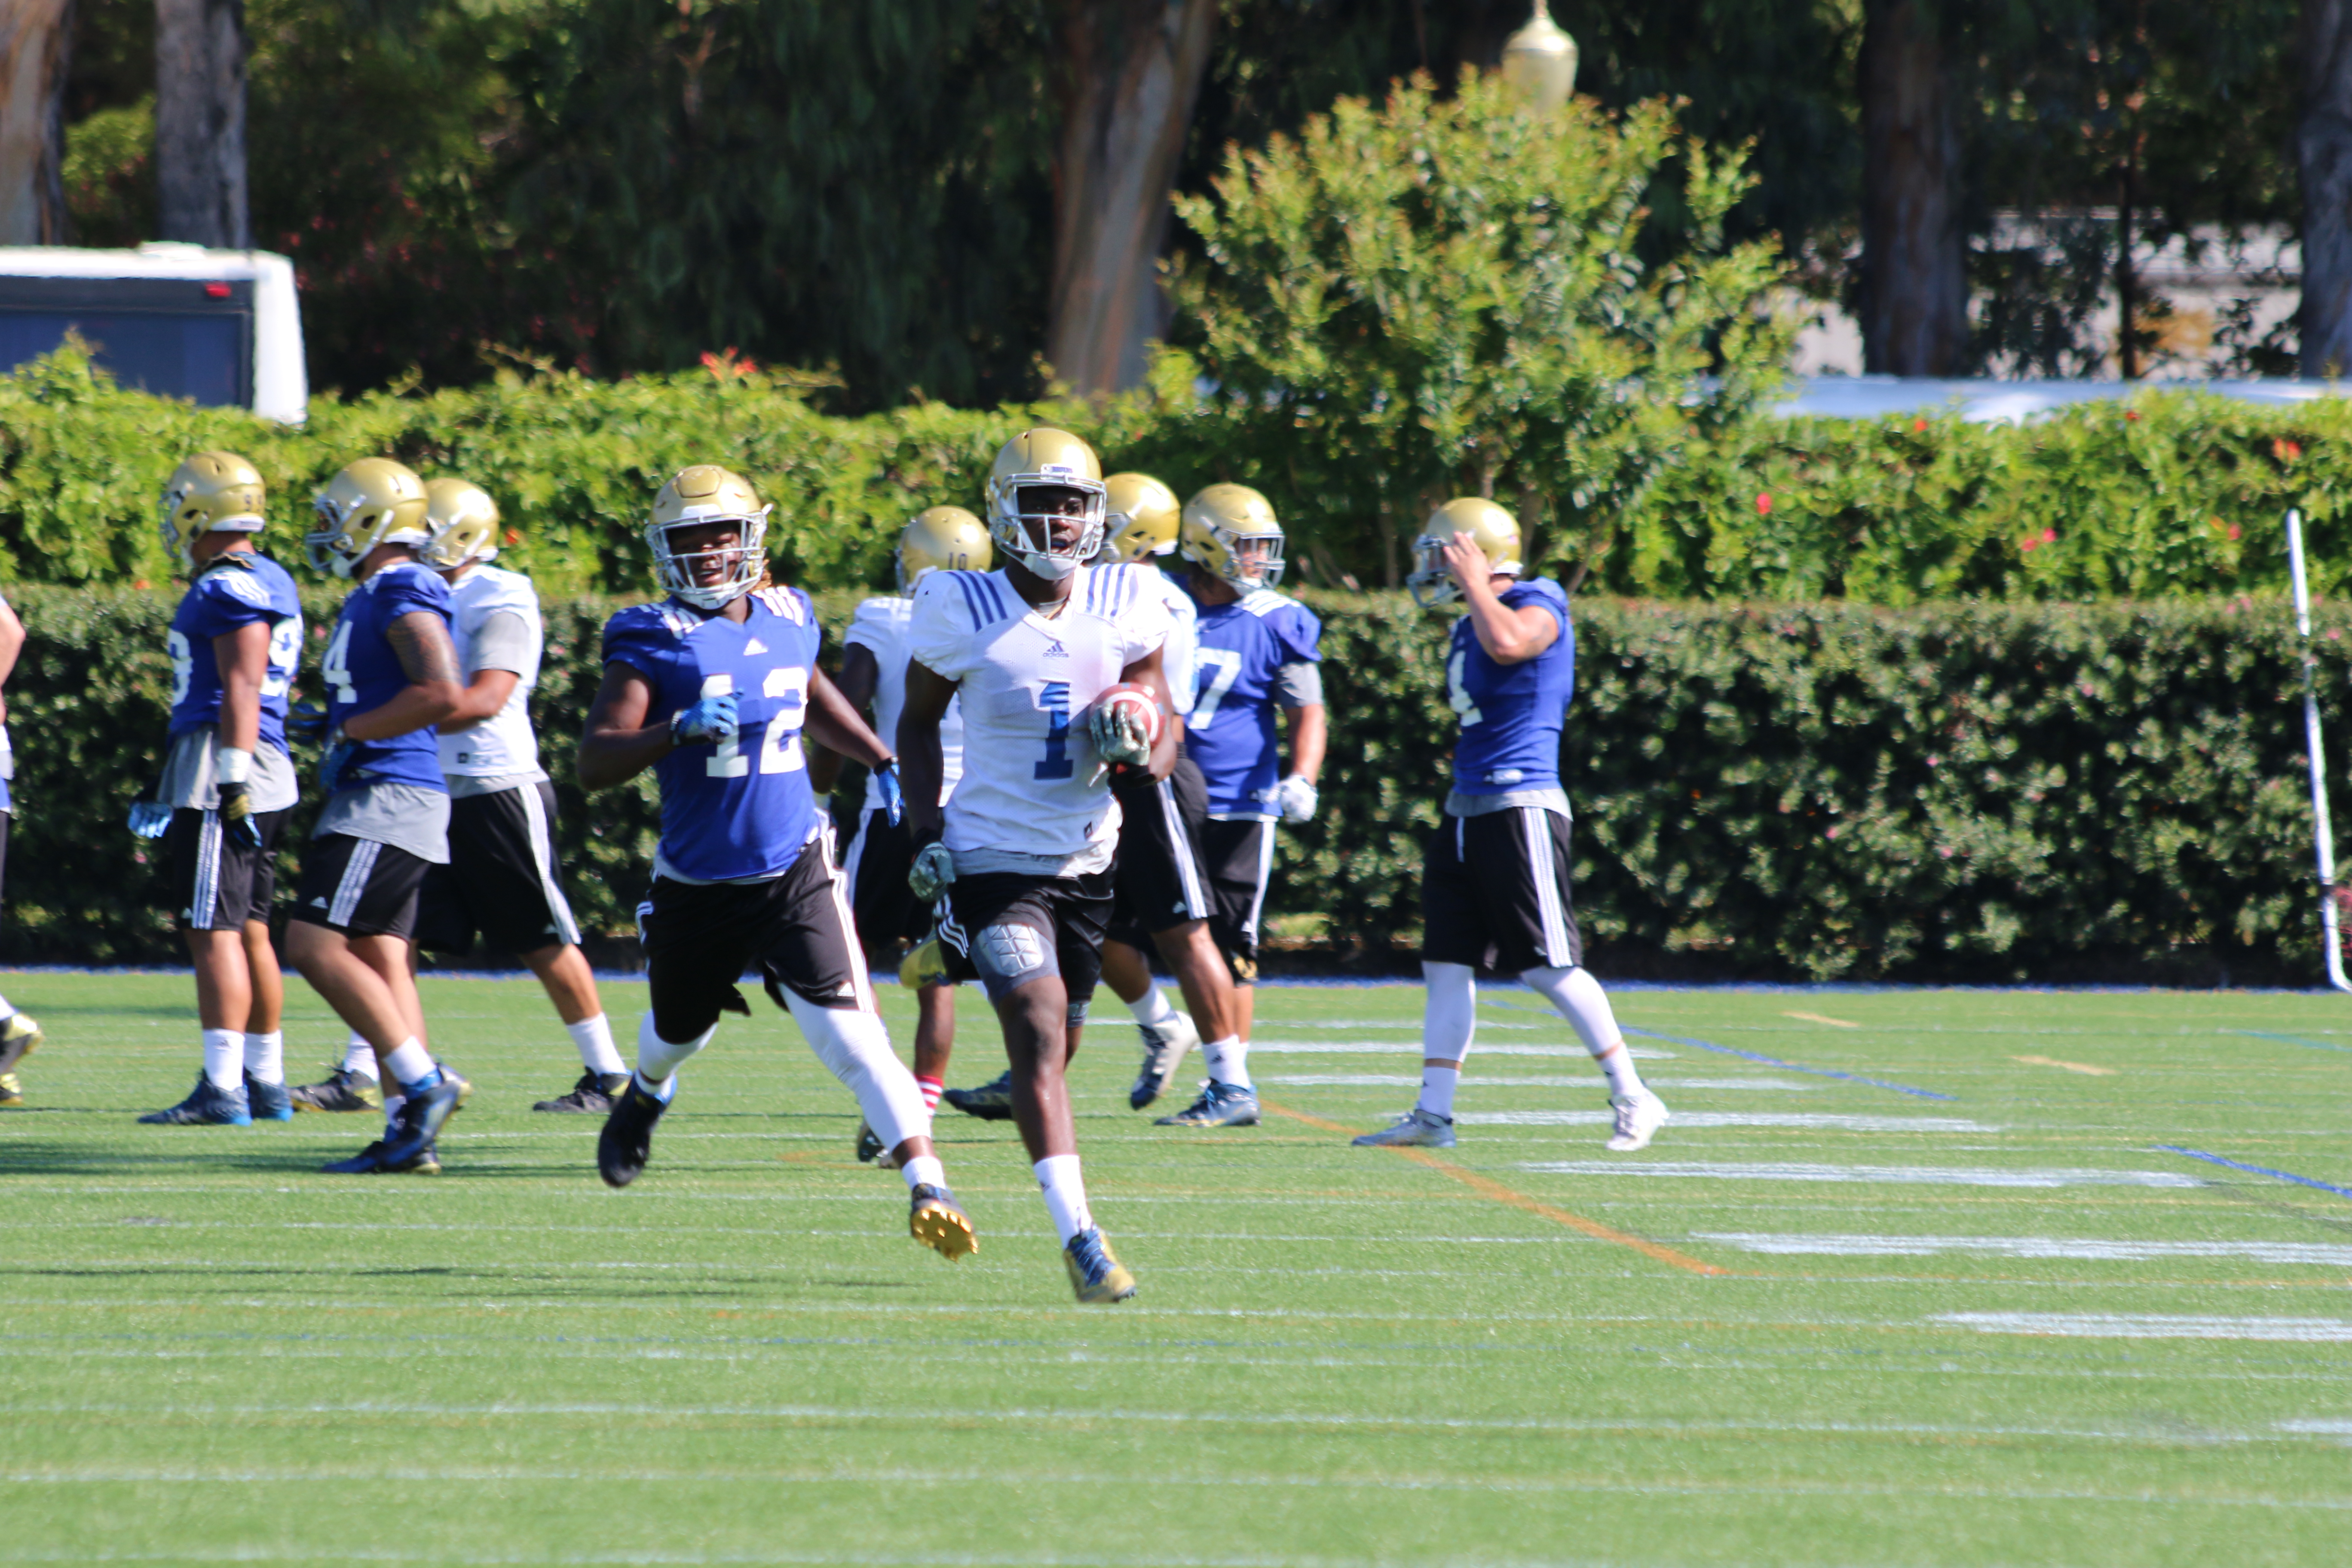 Soso Jamabo gets past Jayon Brown during practice during Fall Camp in Westwood.